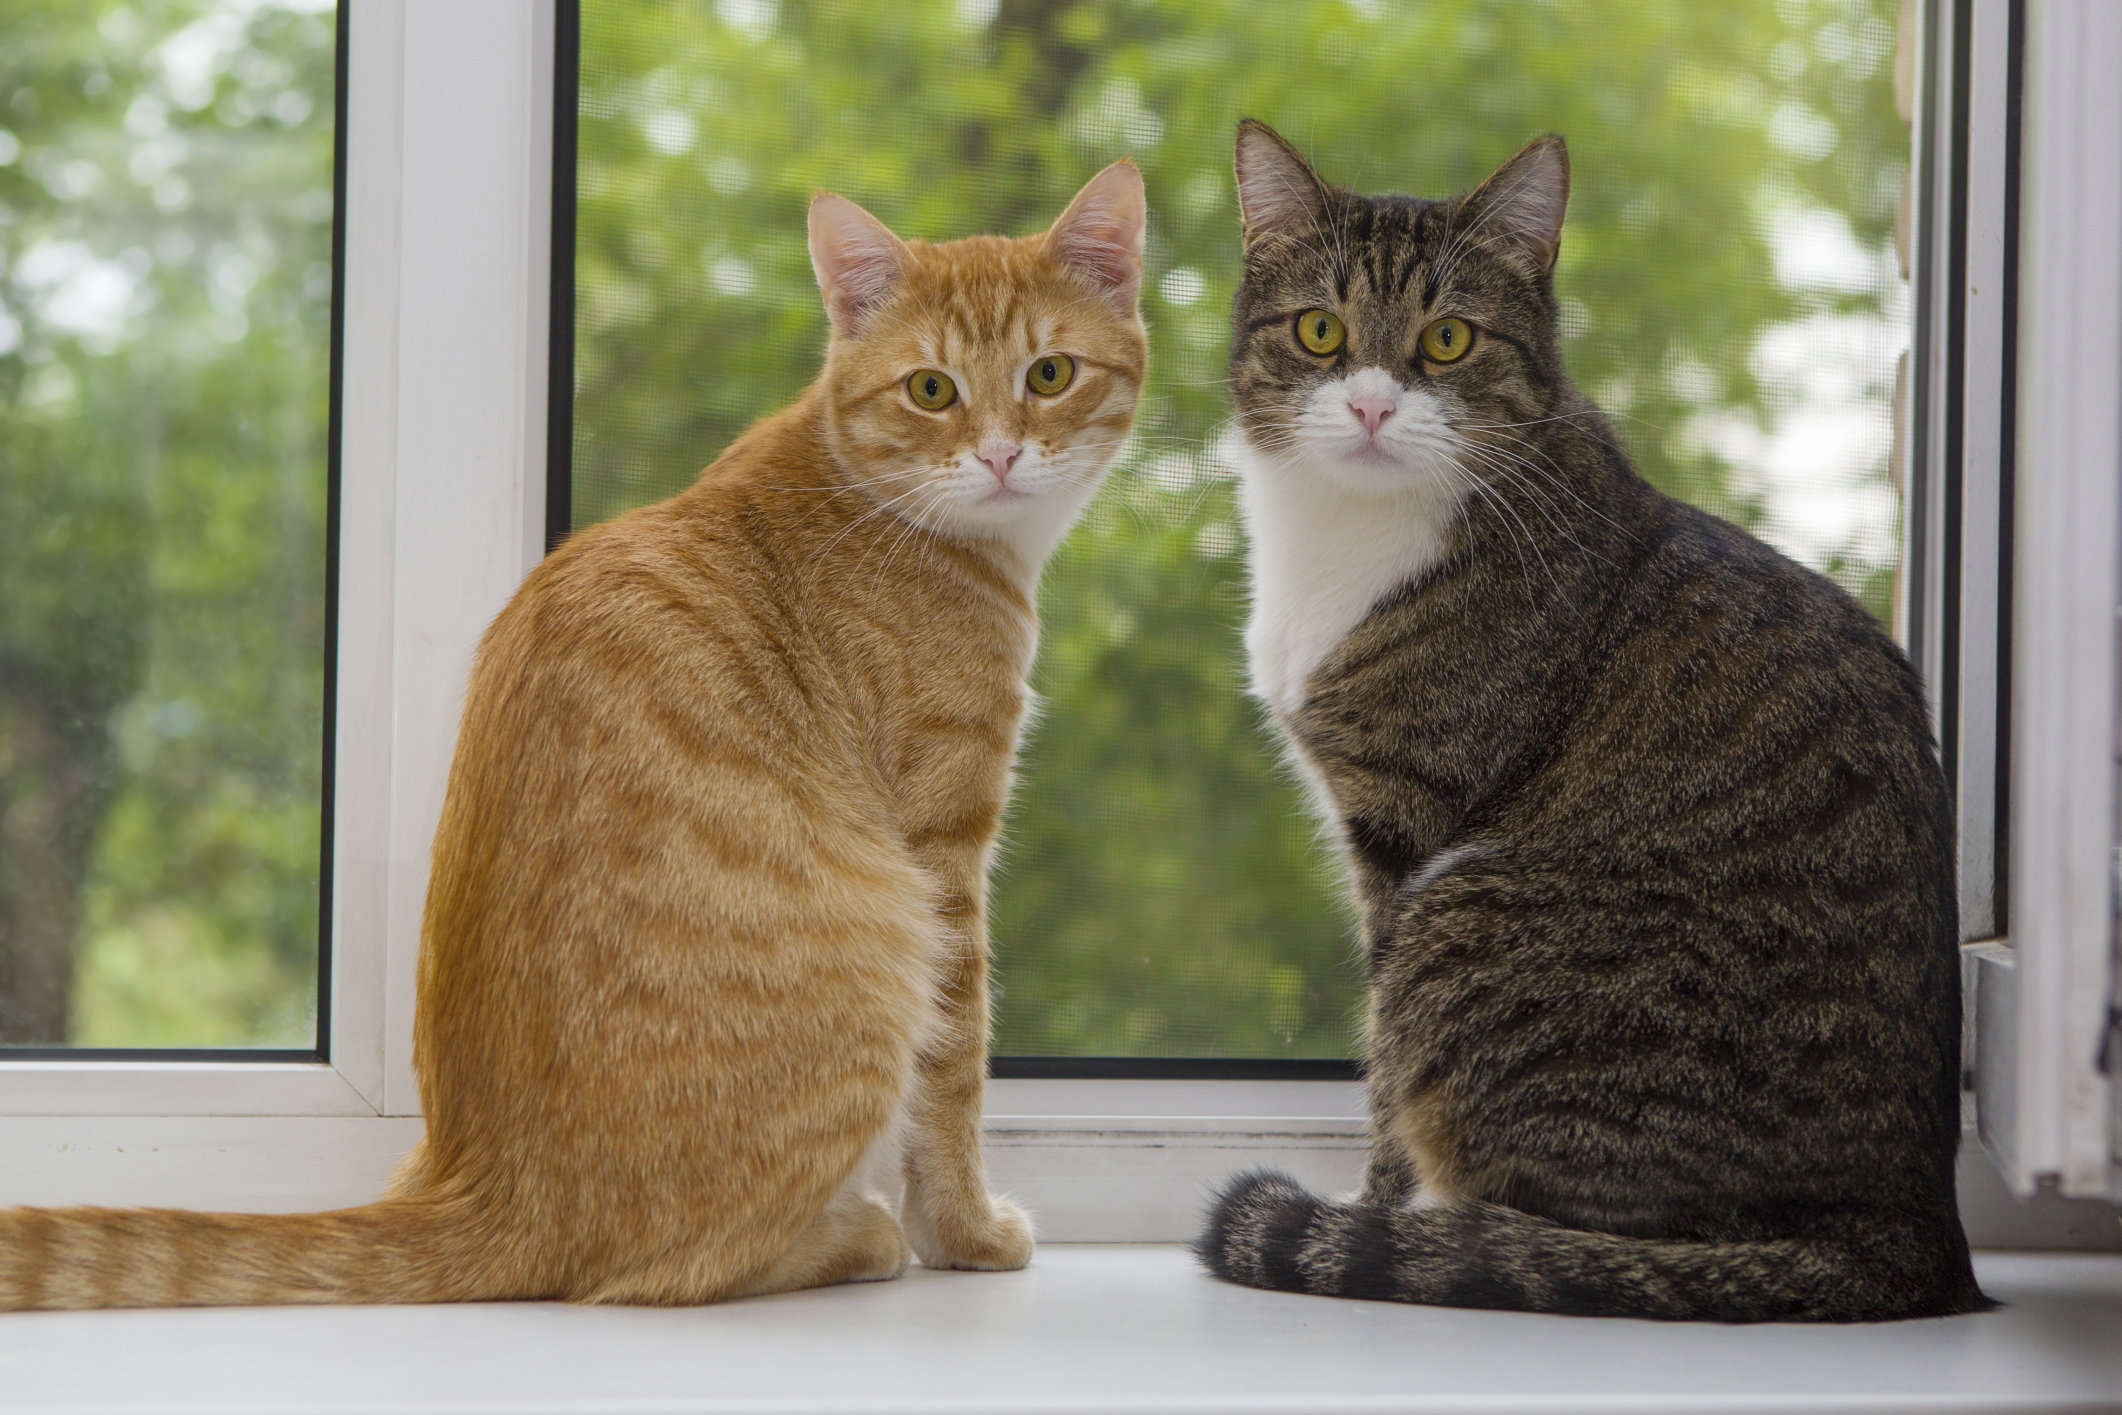 5 Litterbox Mistakes You Could Be Making